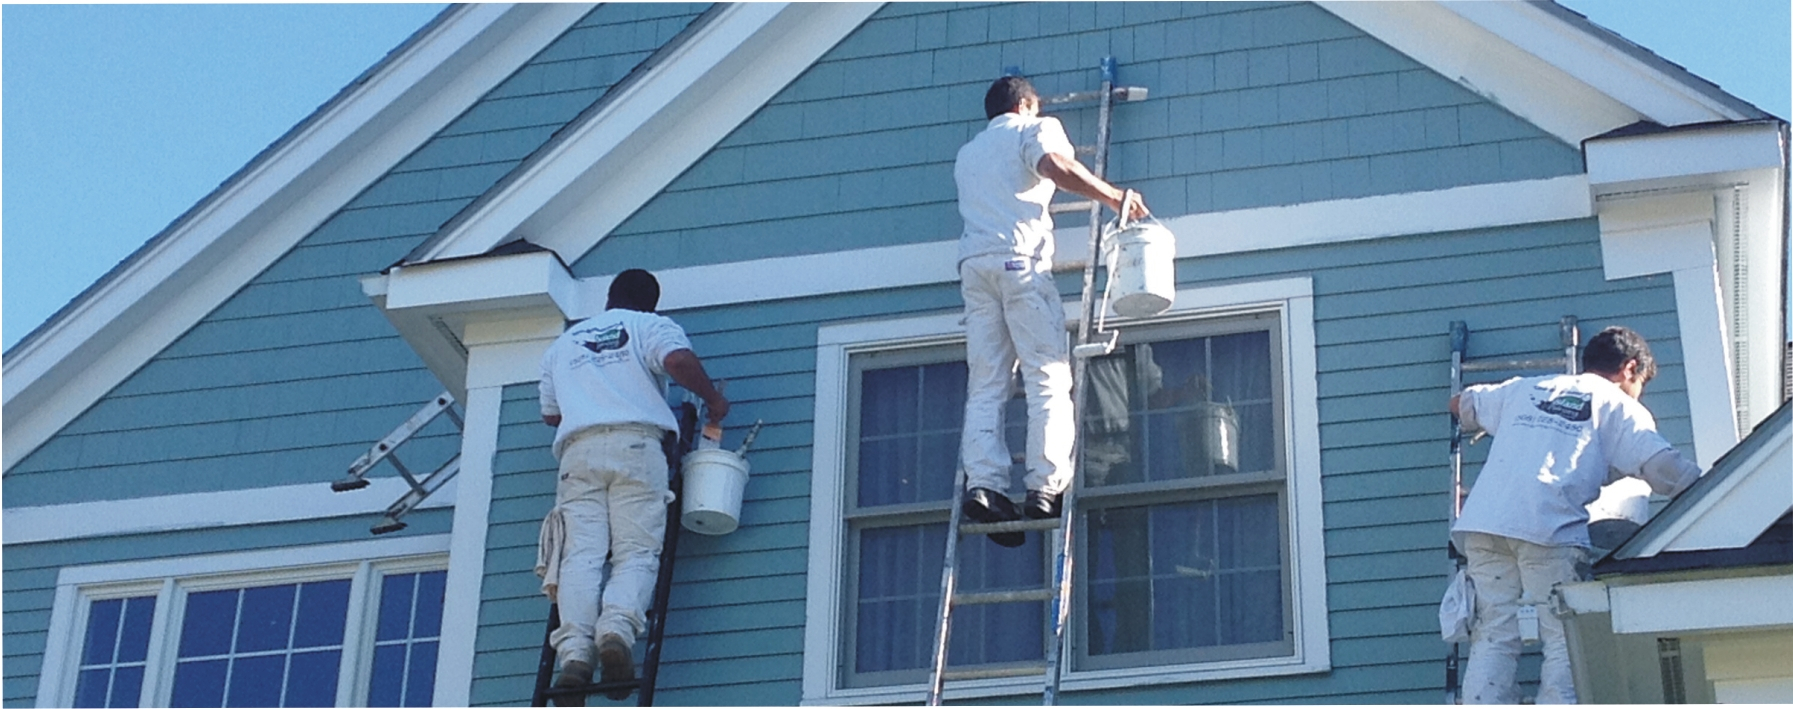 Home painting exterior - Full Address